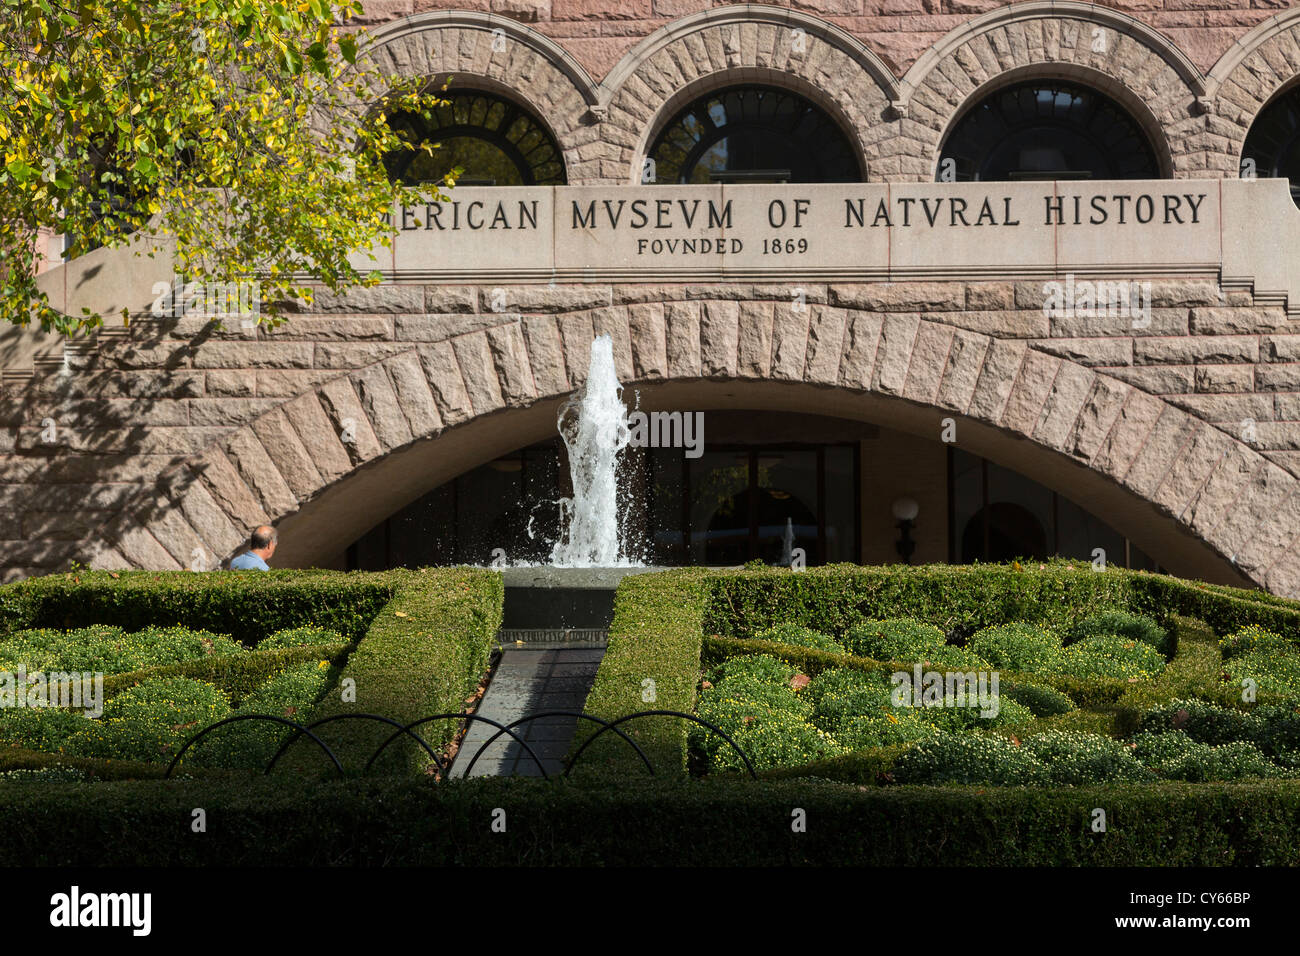 The American Museum of Natural History, 79th street entrance,  Upper West Side, Manhattan, New York City, USA - Stock Image